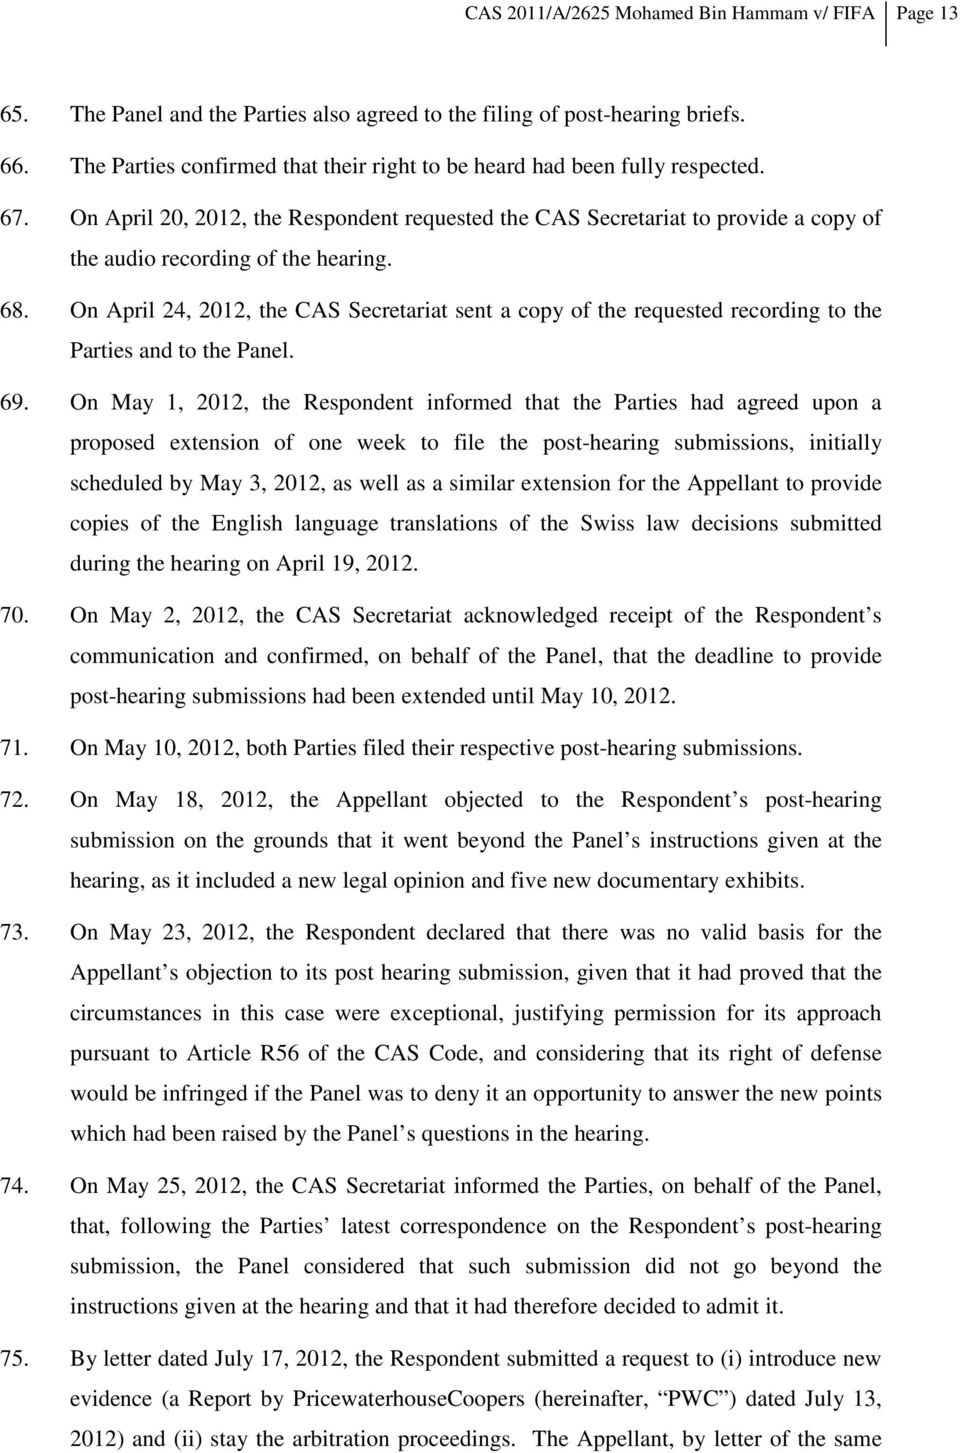 On April 20, 2012, the Respondent requested the CAS Secretariat to provide a copy of the audio recording of the hearing. 68.